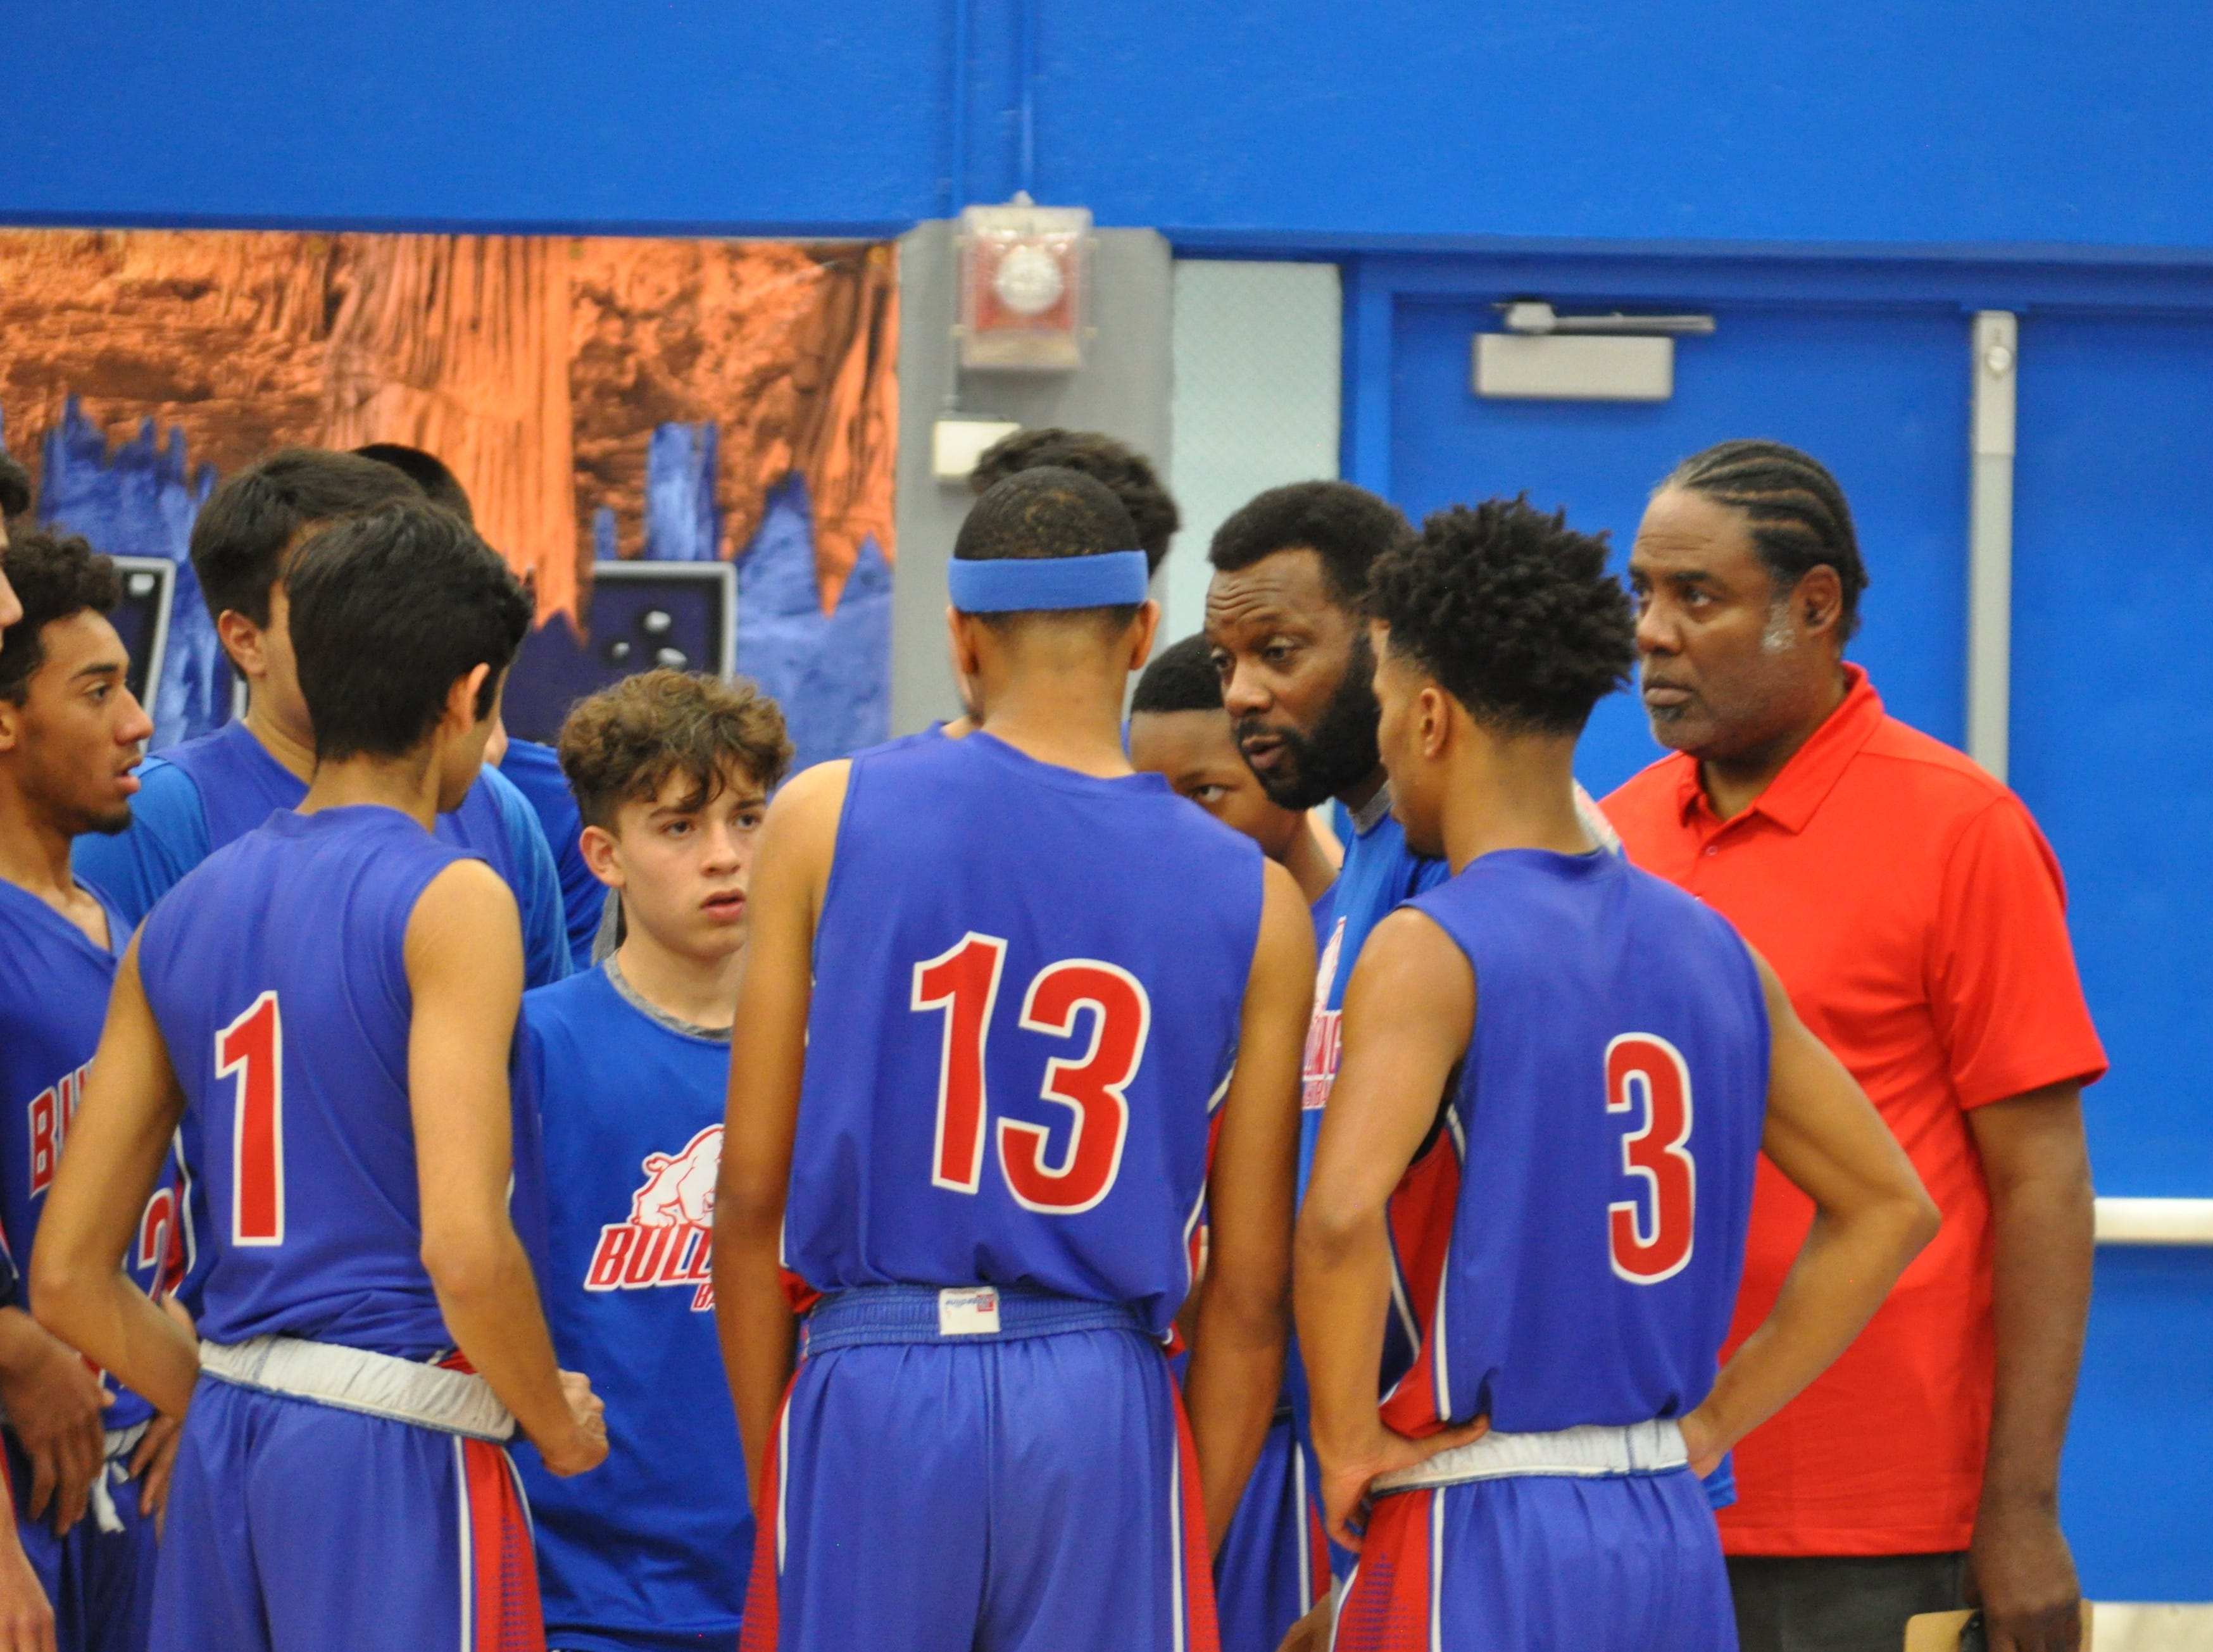 Las Cruces head coach William Benjamin talks to his team during Friday's game against Carlsbad.